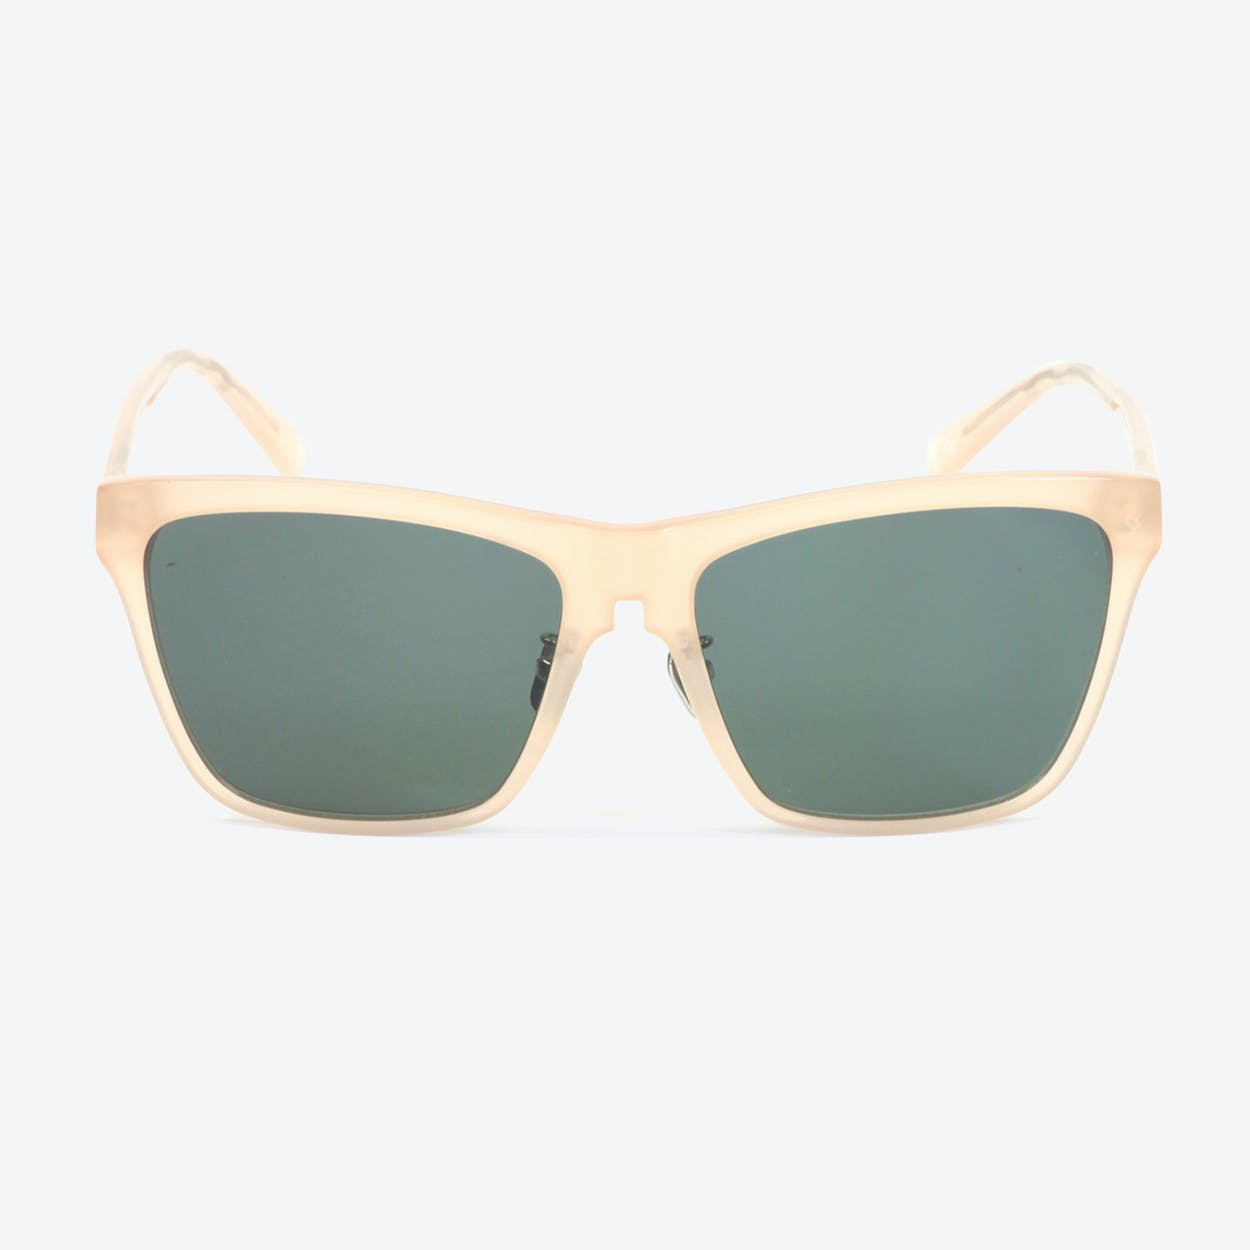 Sunglasses Ineffable C03